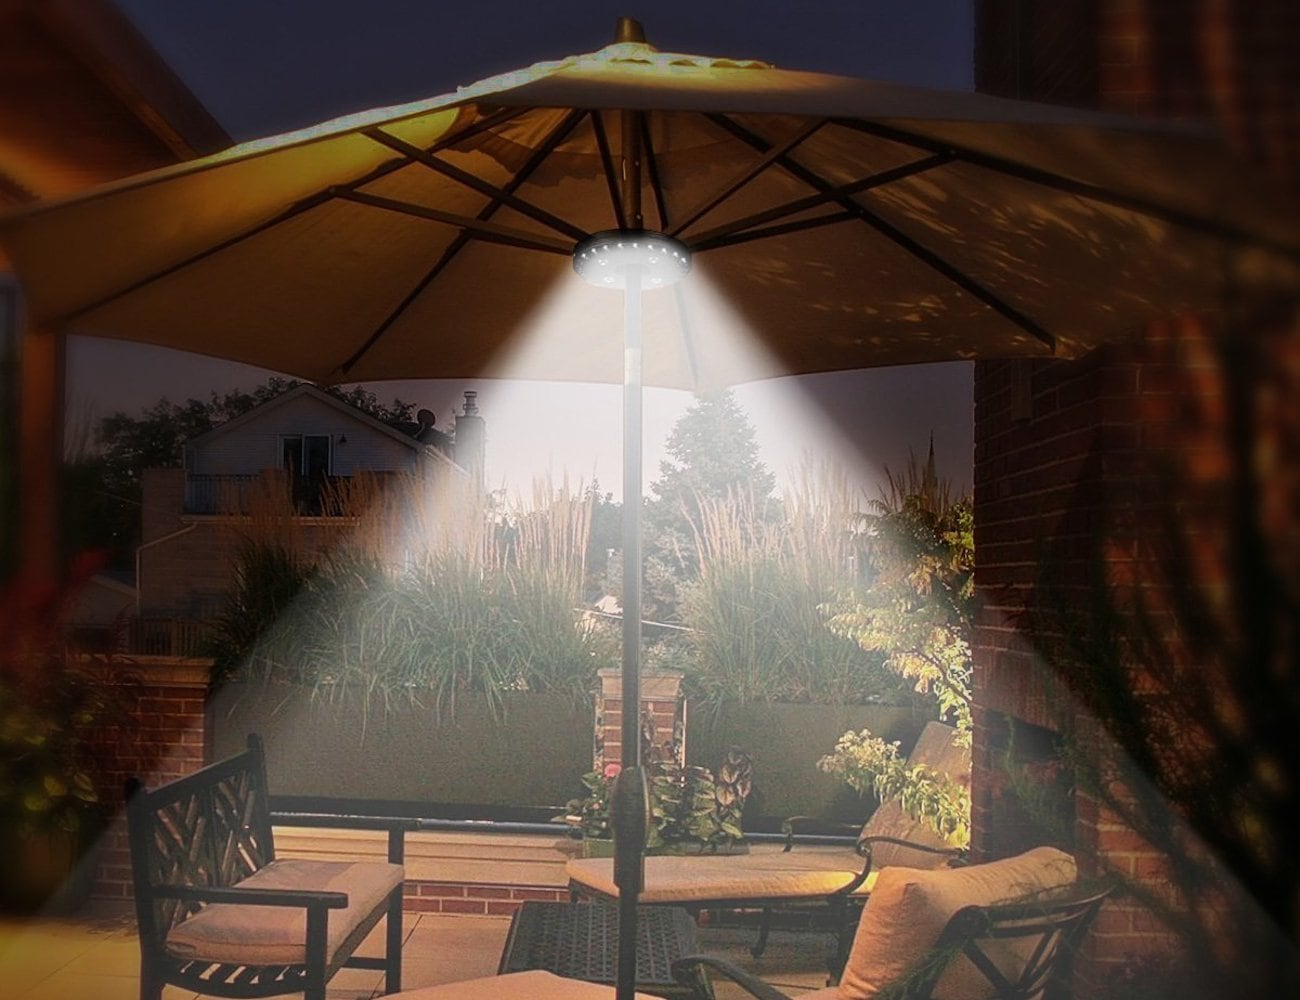 OYOCO Umbrella Light Hanging Outdoor Lamp will shine bright on your patio parties